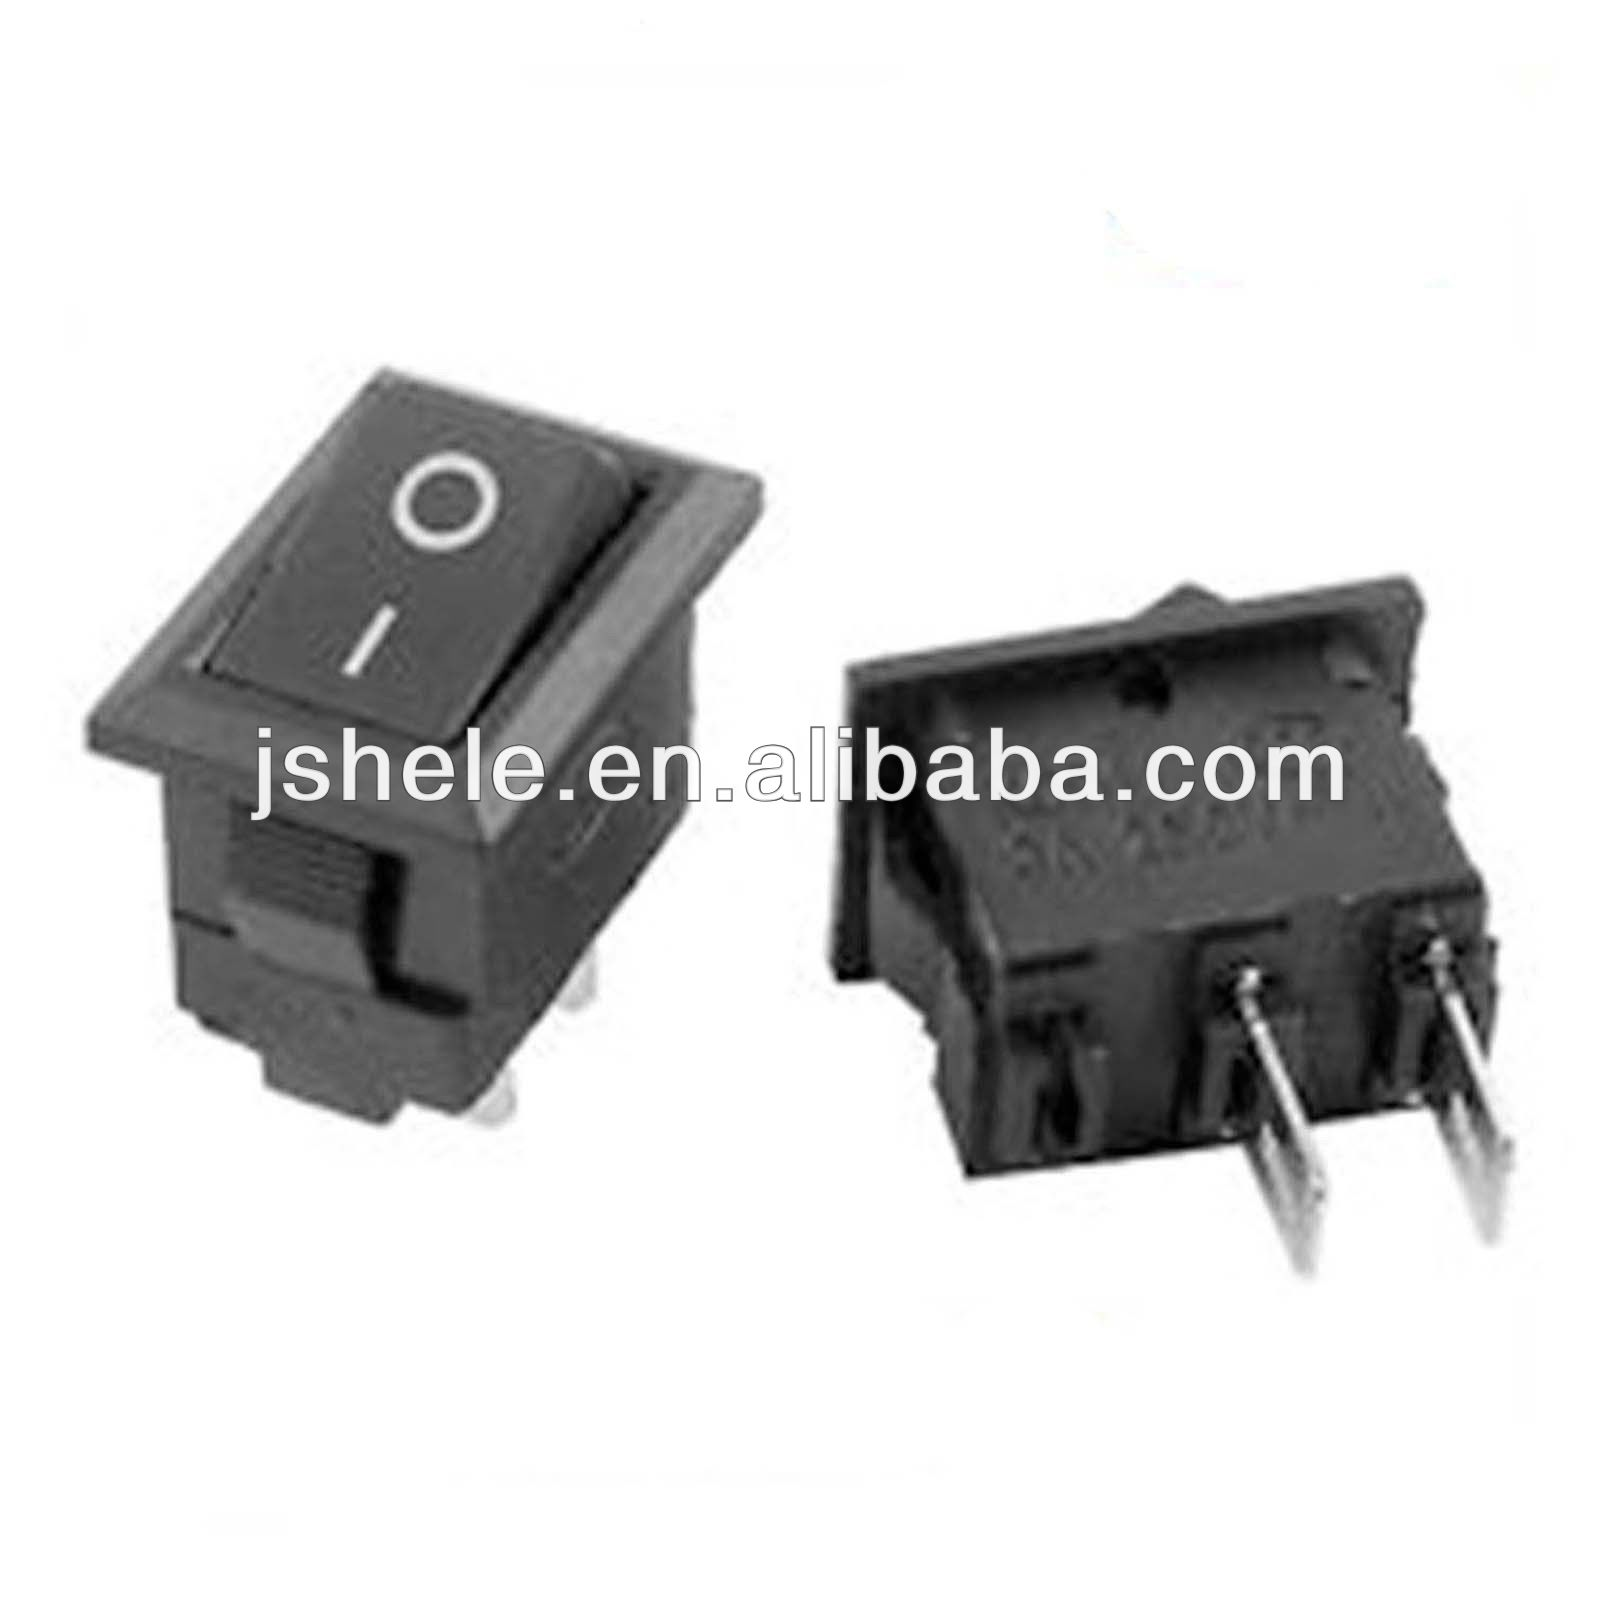 Mini Rocker Switch Black On Off Spst Single Pole Throw Buy Switches Onoff Illuminated Switchon Switchlamp Product